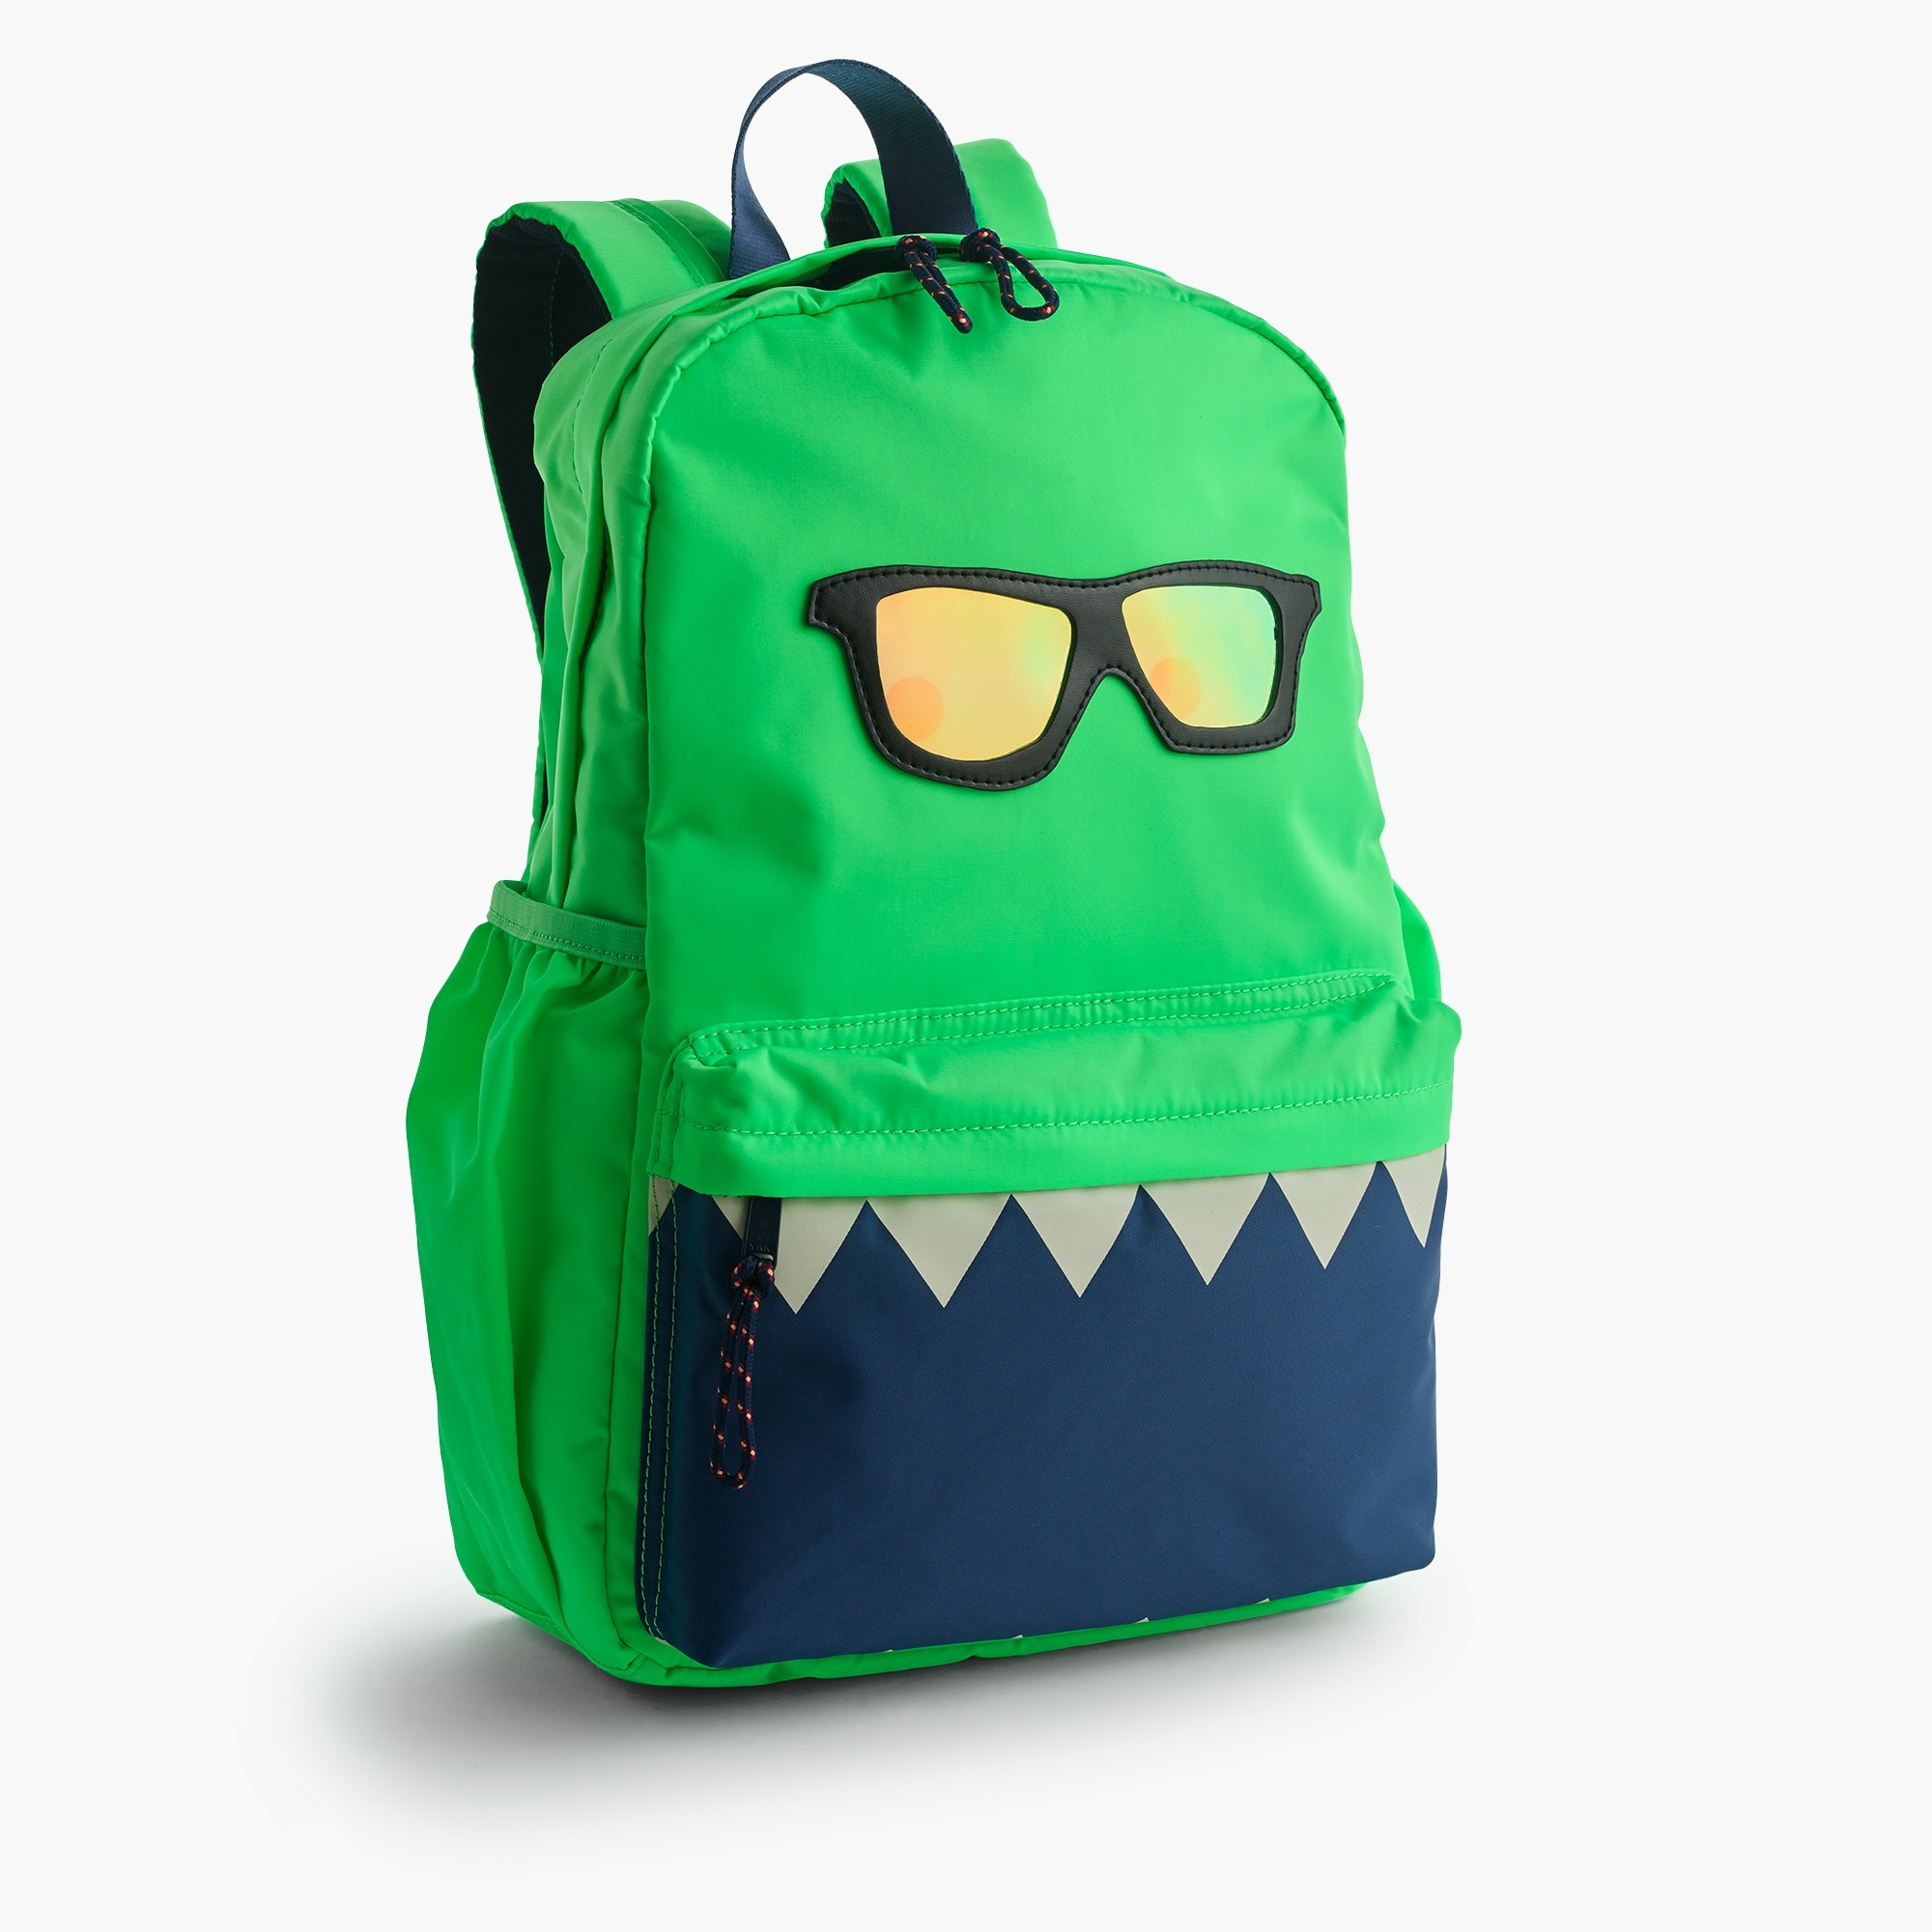 Kids' glow-in-the-dark snaggletooth monster backpack